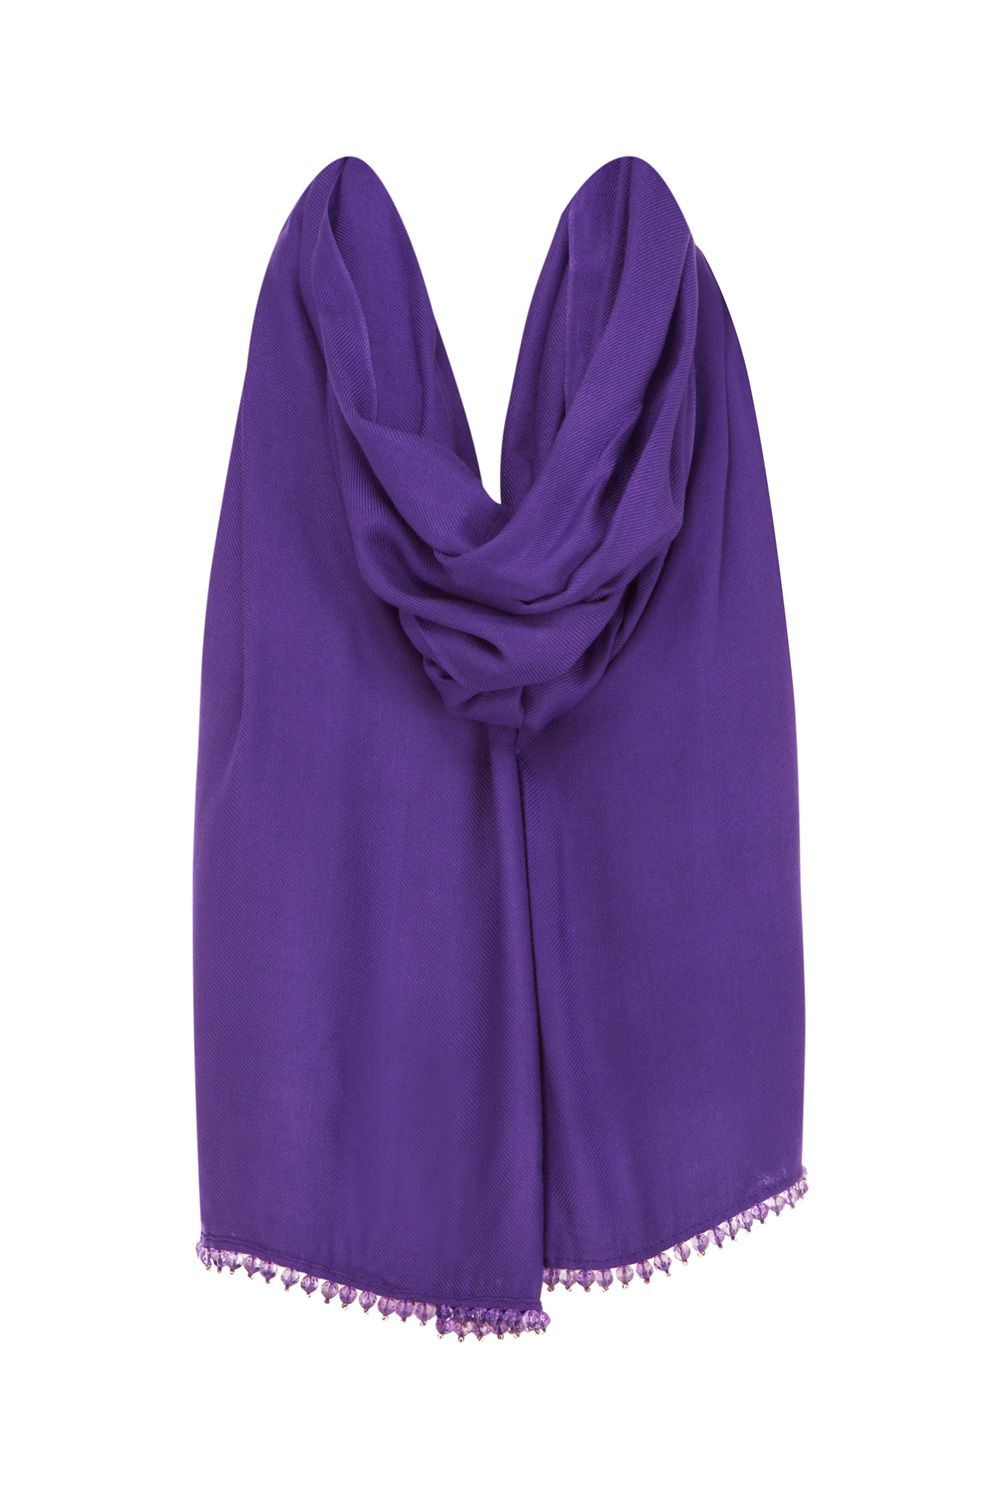 Theresa purple wrap